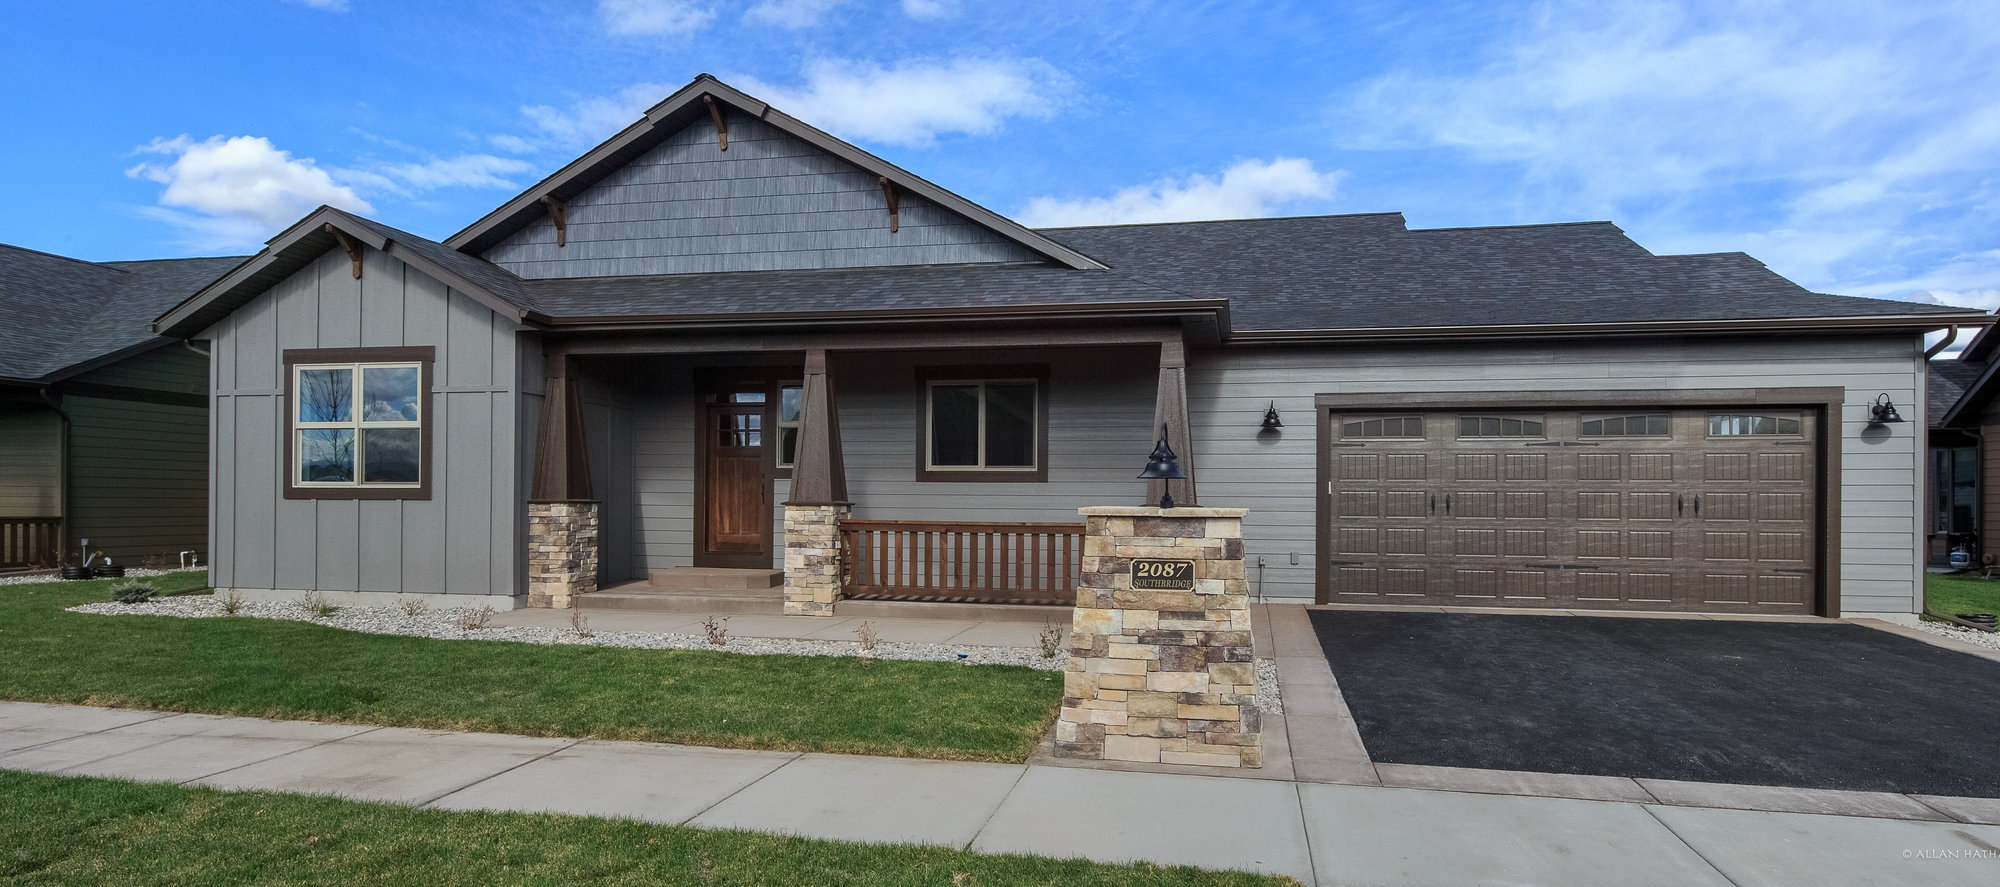 bozeman home for sale